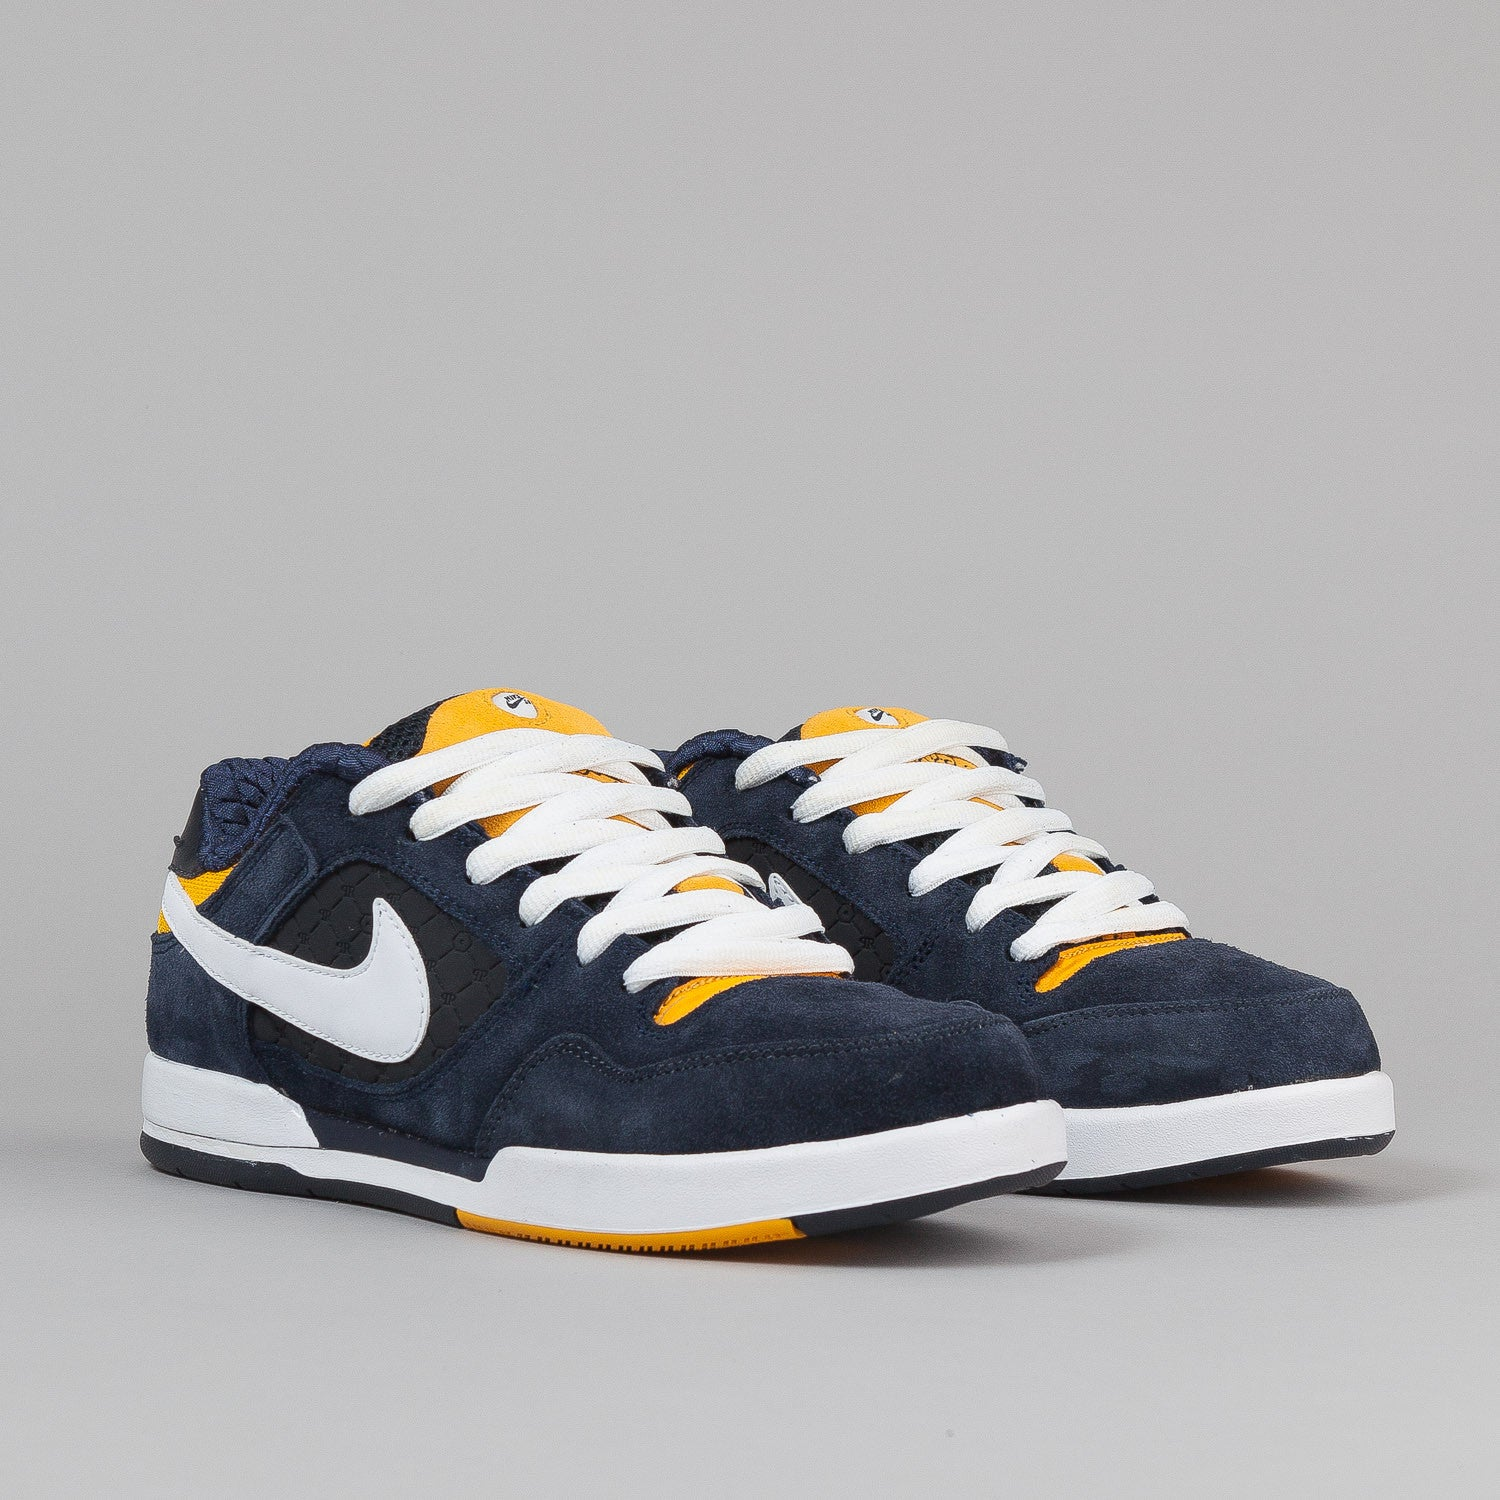 Nike SB Paul Rodriguez 2 Shoes - Dark Obsidian / White